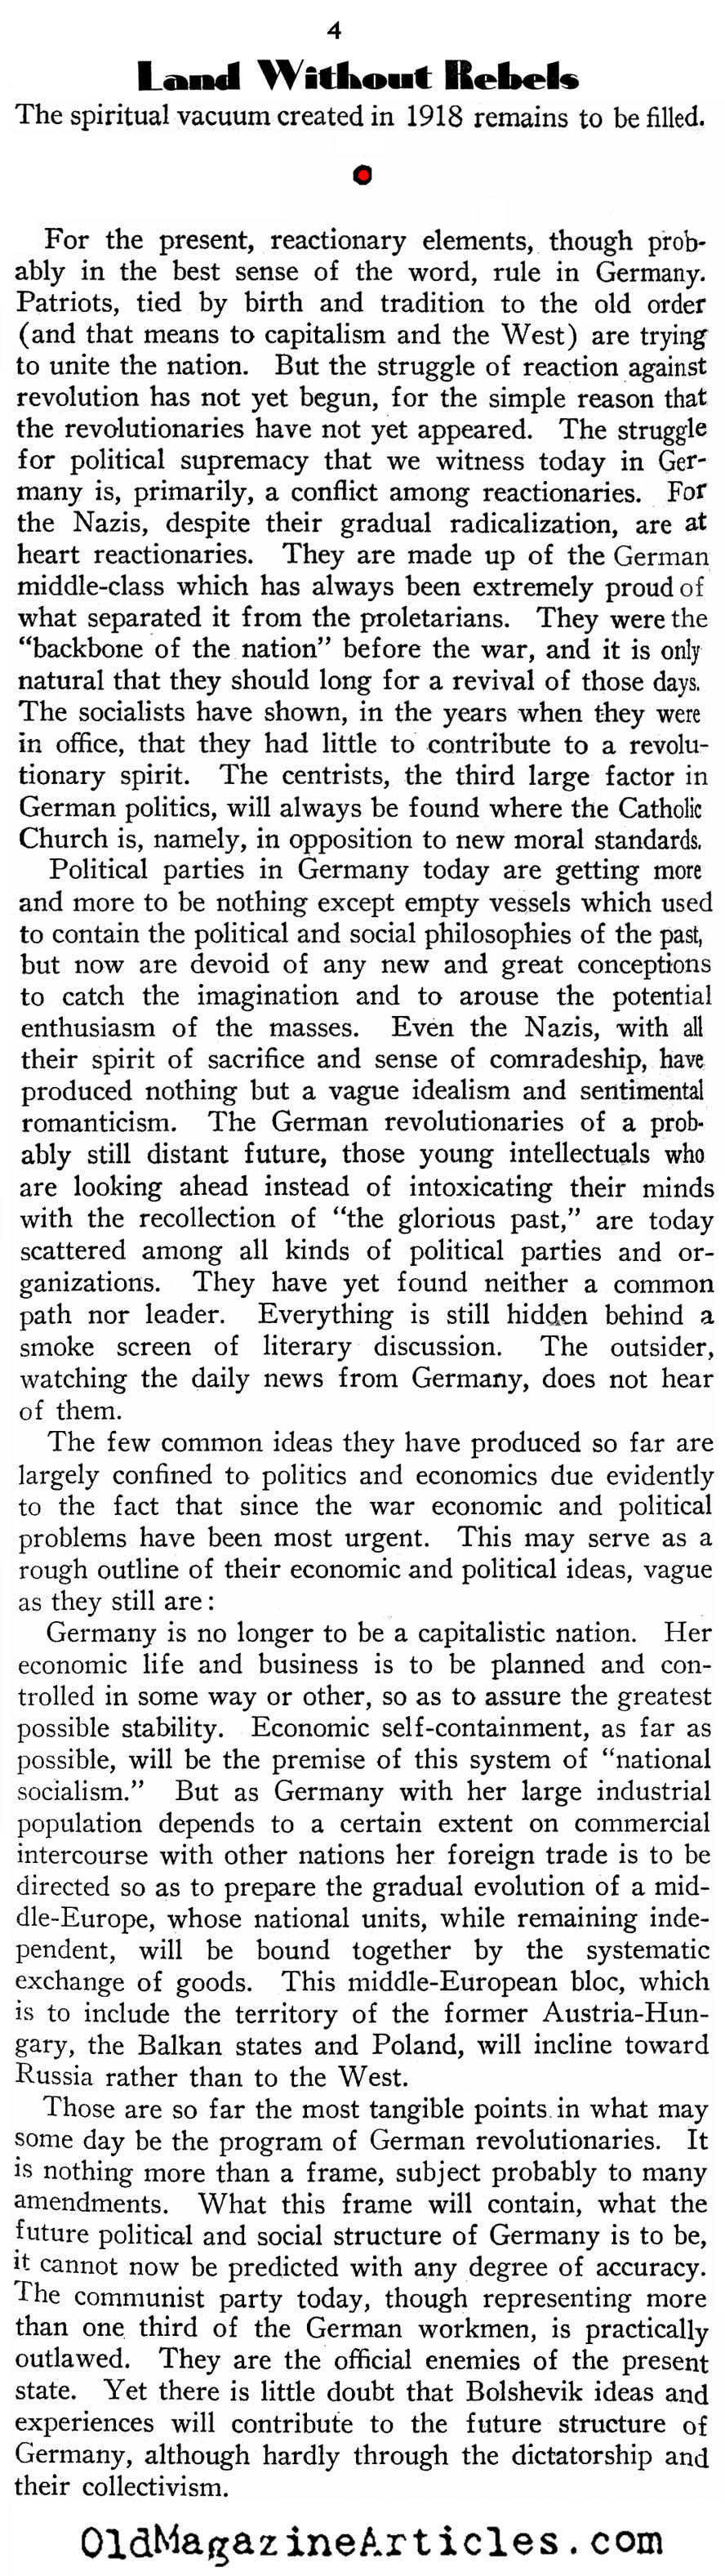 Germany on the Eve of Hitler (New Outlook Magazine, 1933)